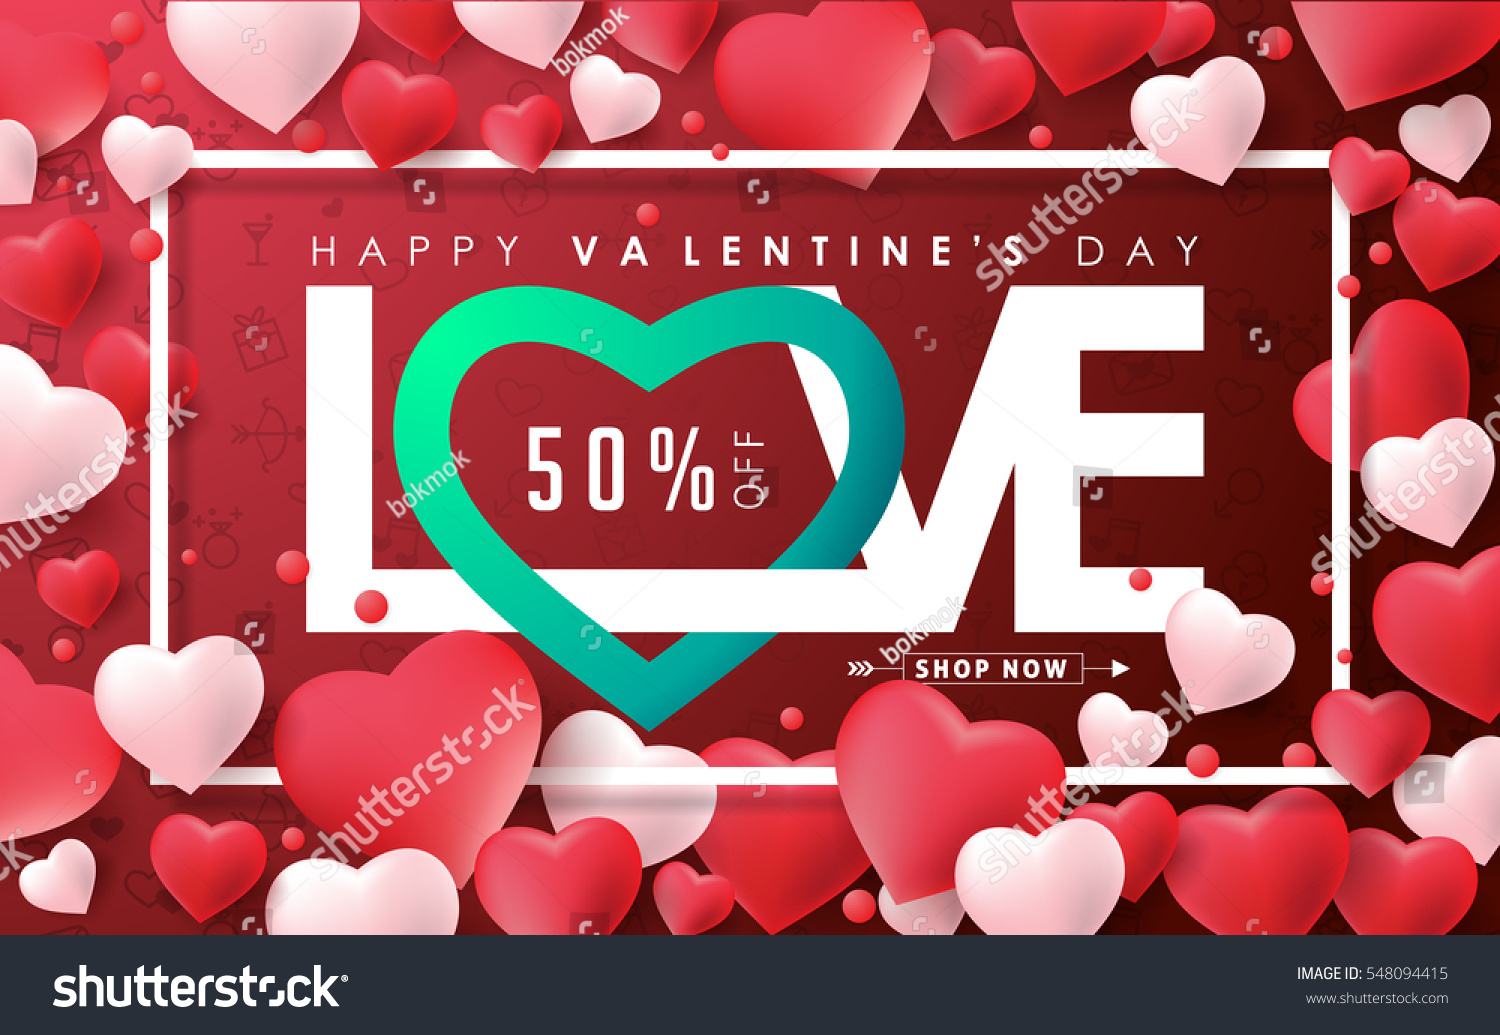 Valentines Day Sale Background Heart Shaped Stock Vector